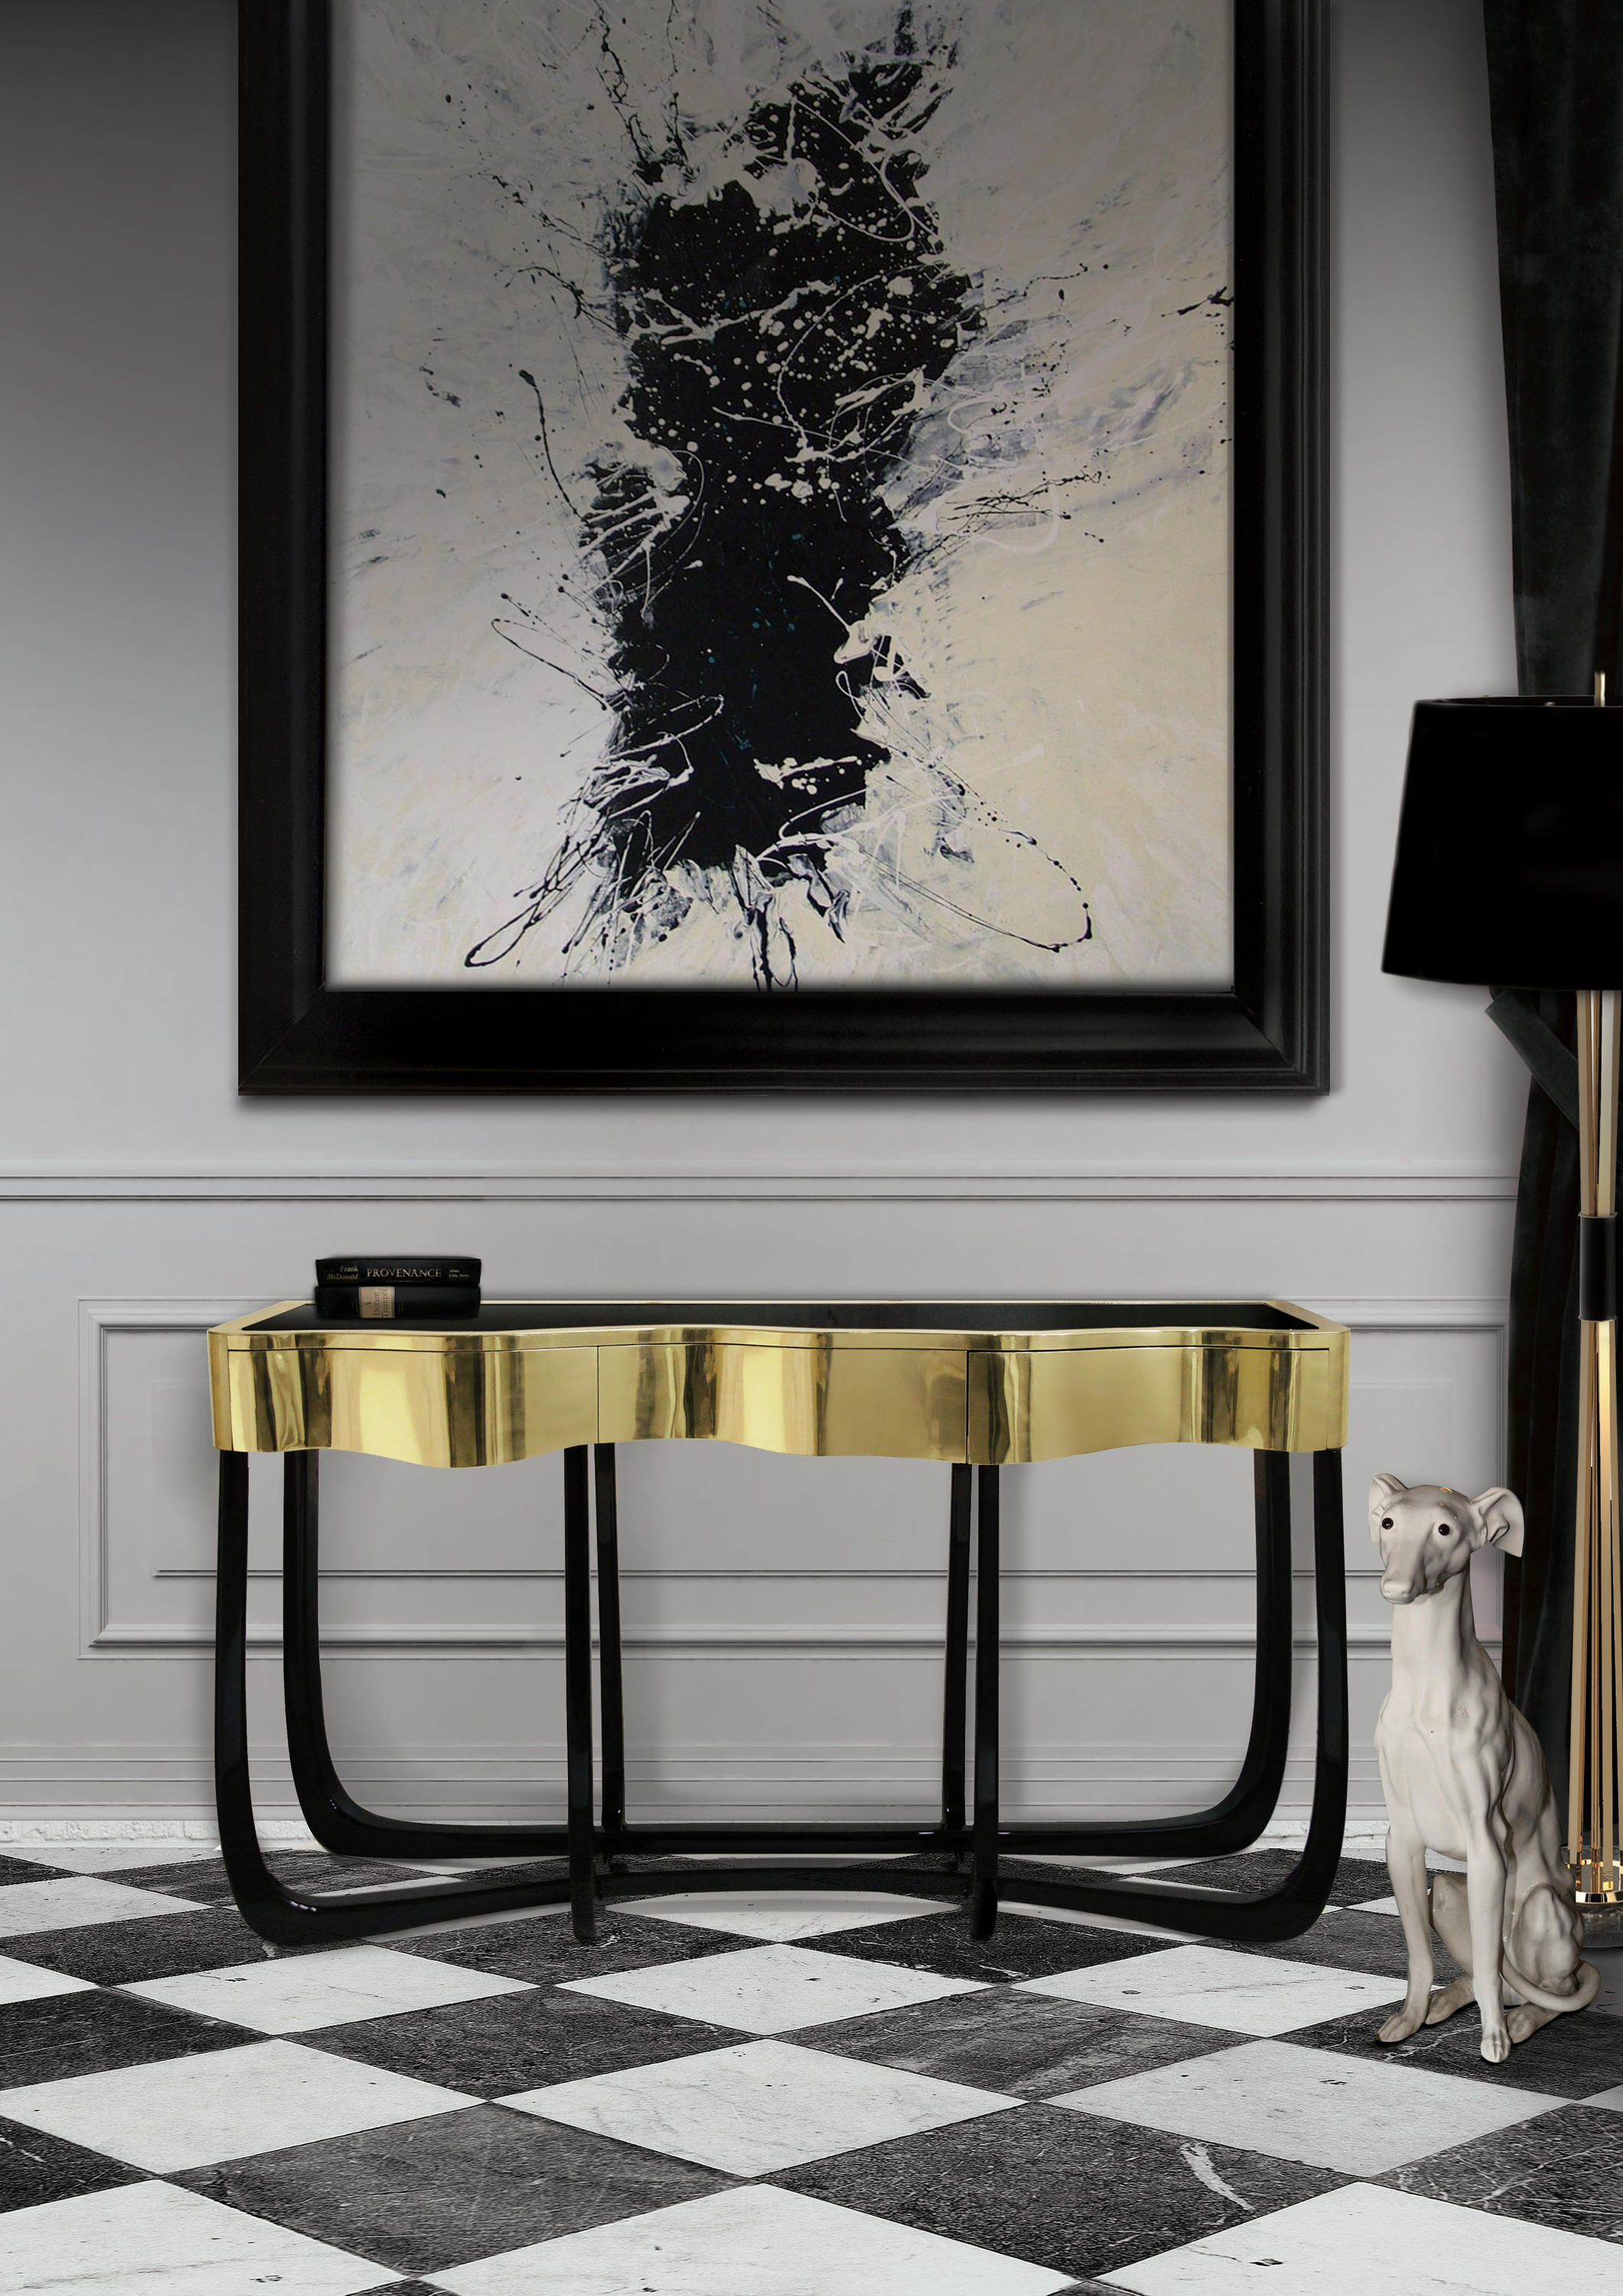 console tables Breathtaking Console Tables With Gold Brass Finish 3 Breathtaking Console Tables With Gold Brass Finish